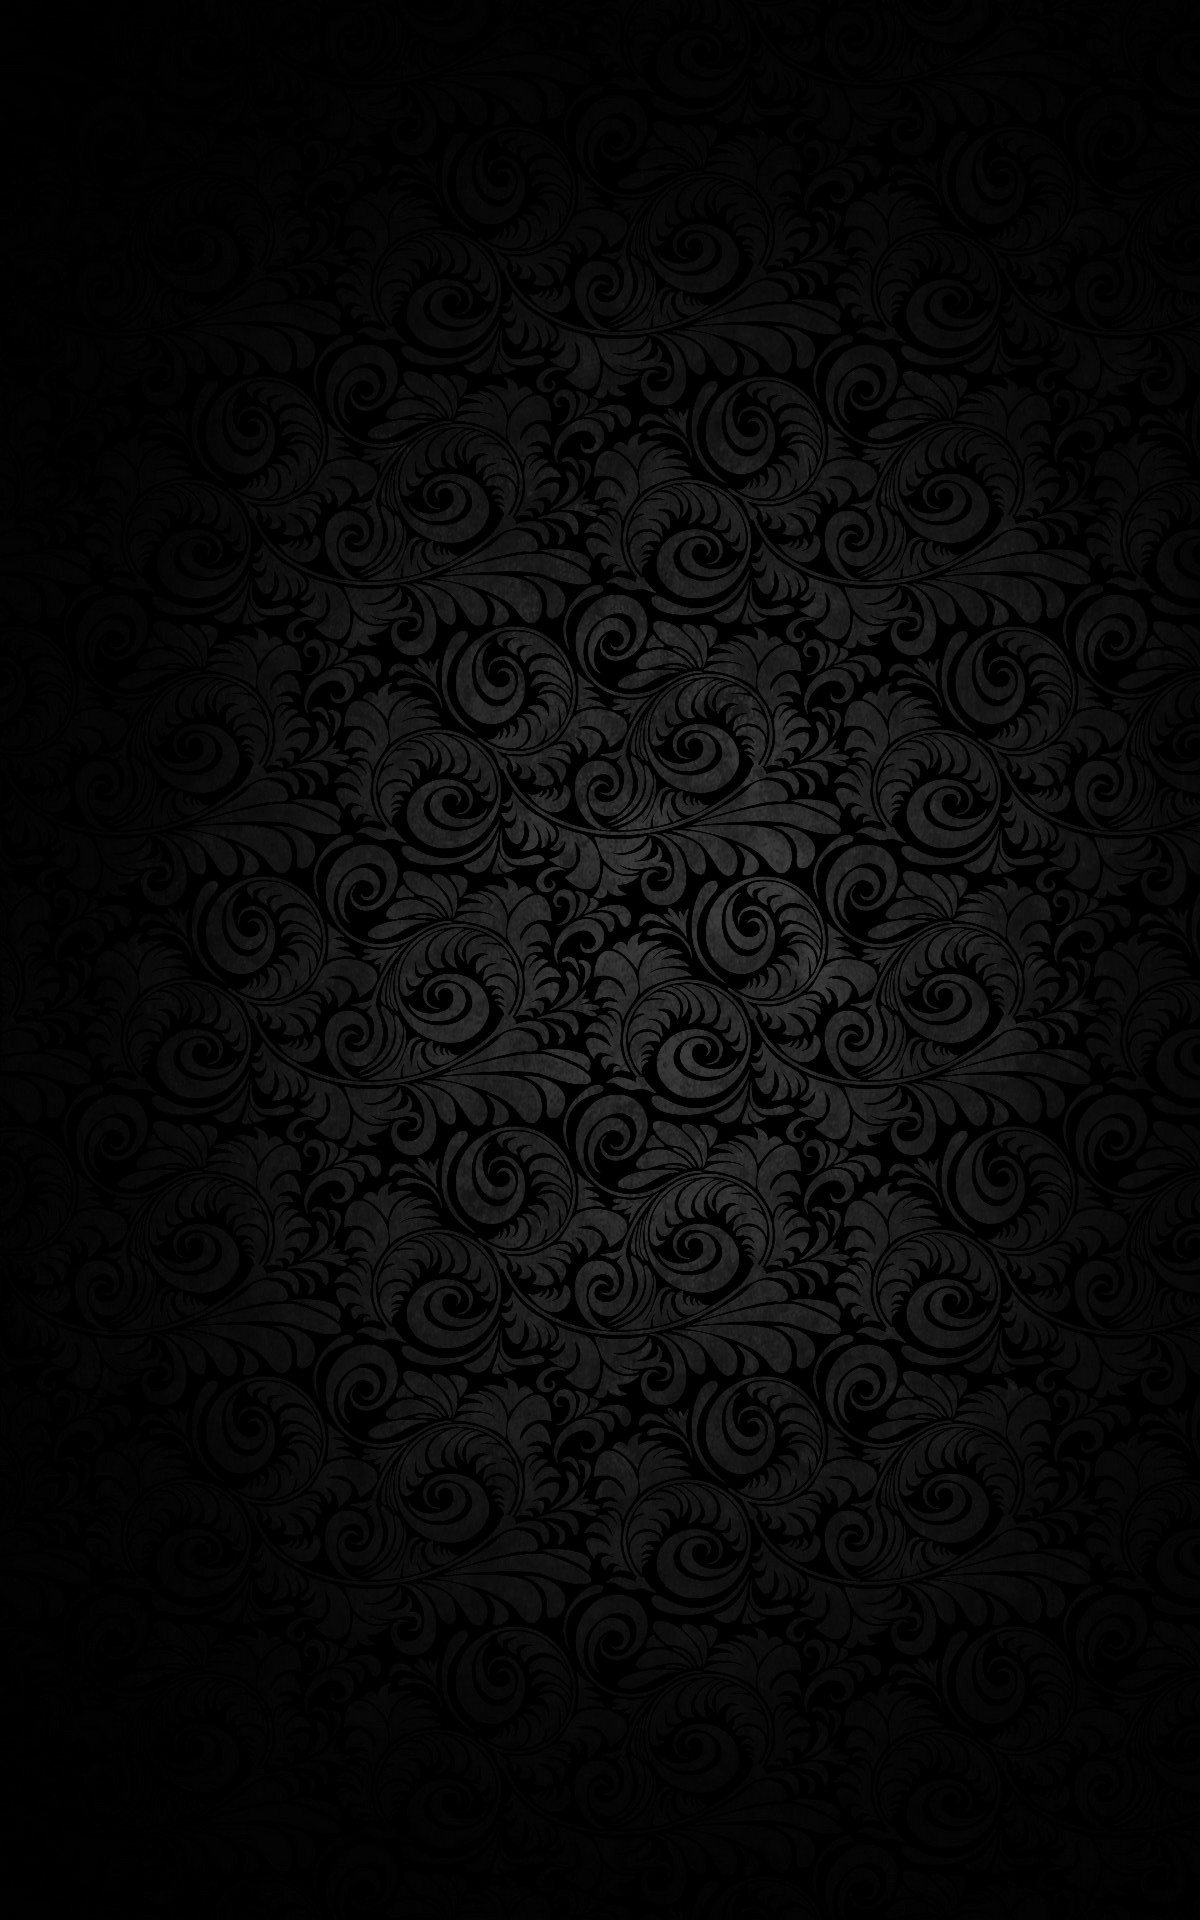 iPhone Wallpaper Black